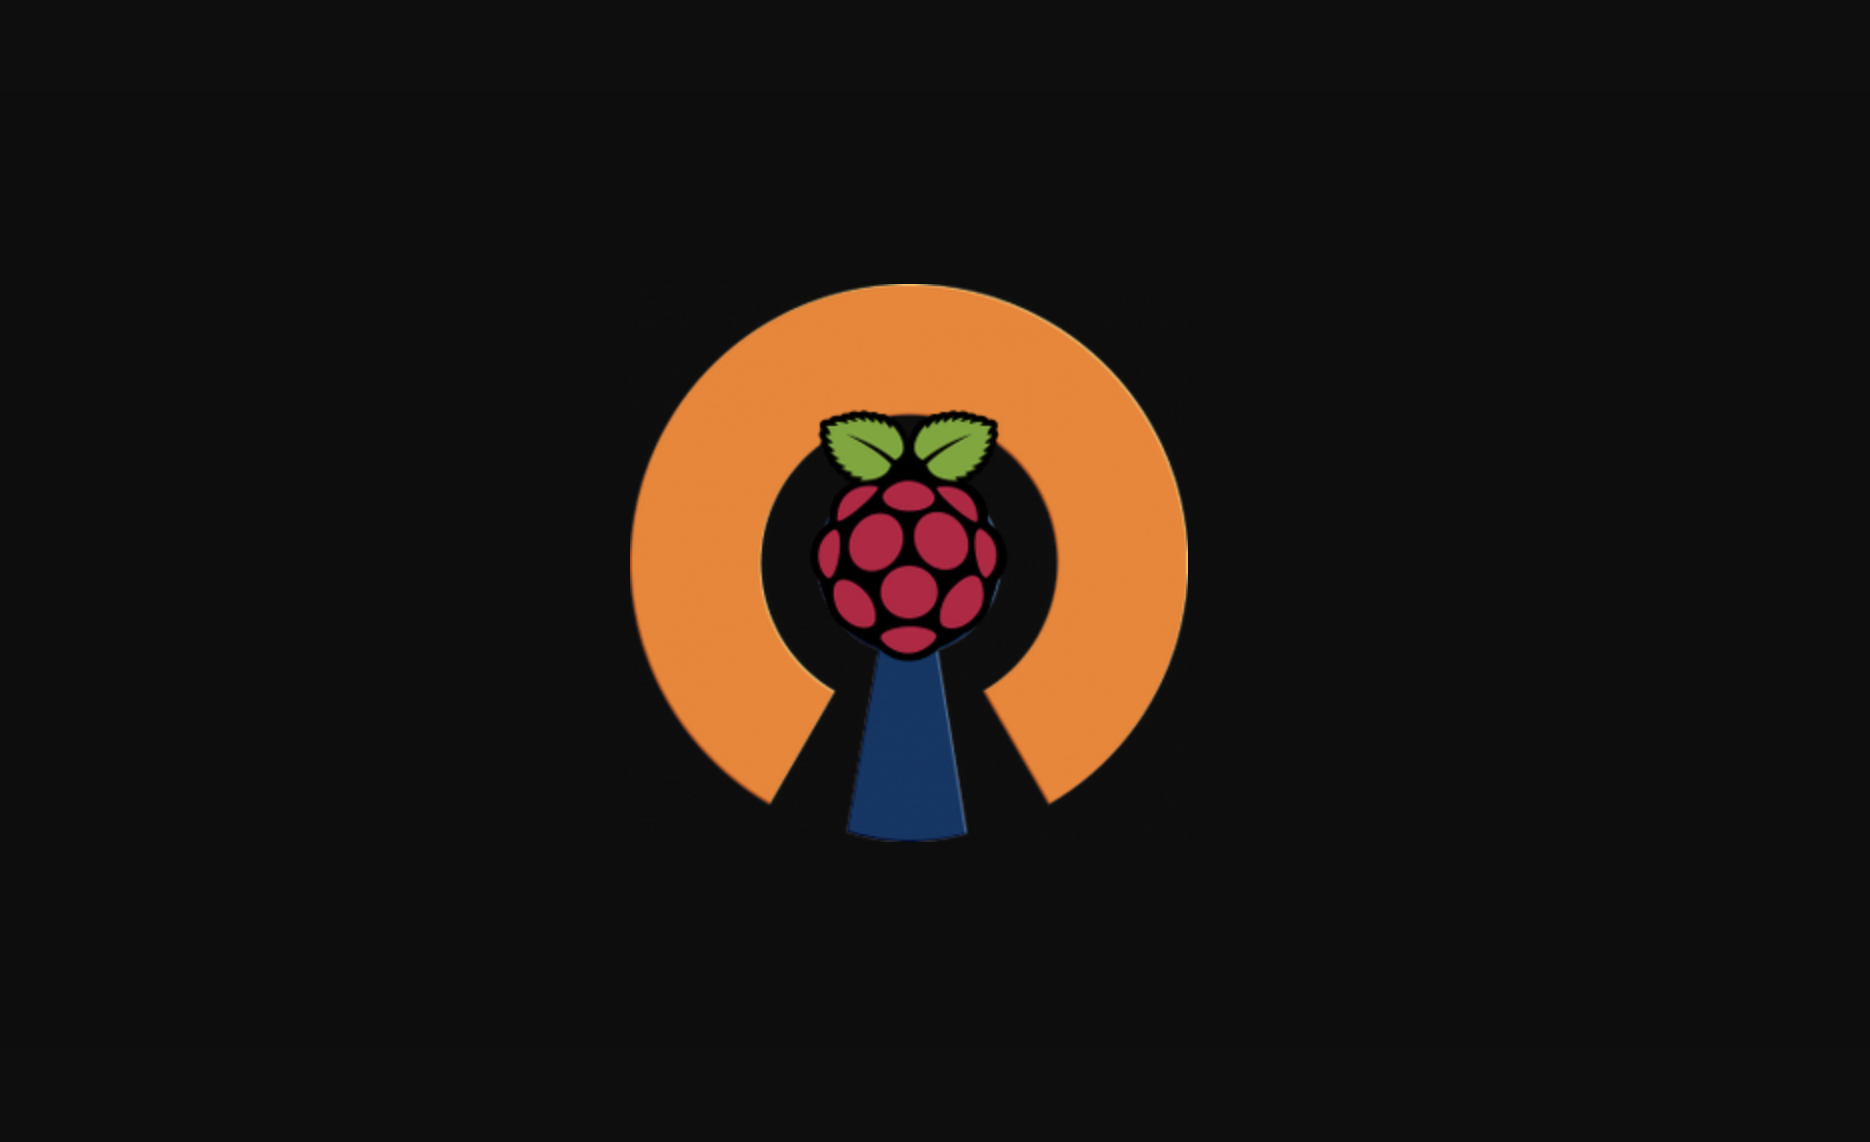 Make An OVPN Based VPN Server With Raspberry Pi And PiVpn